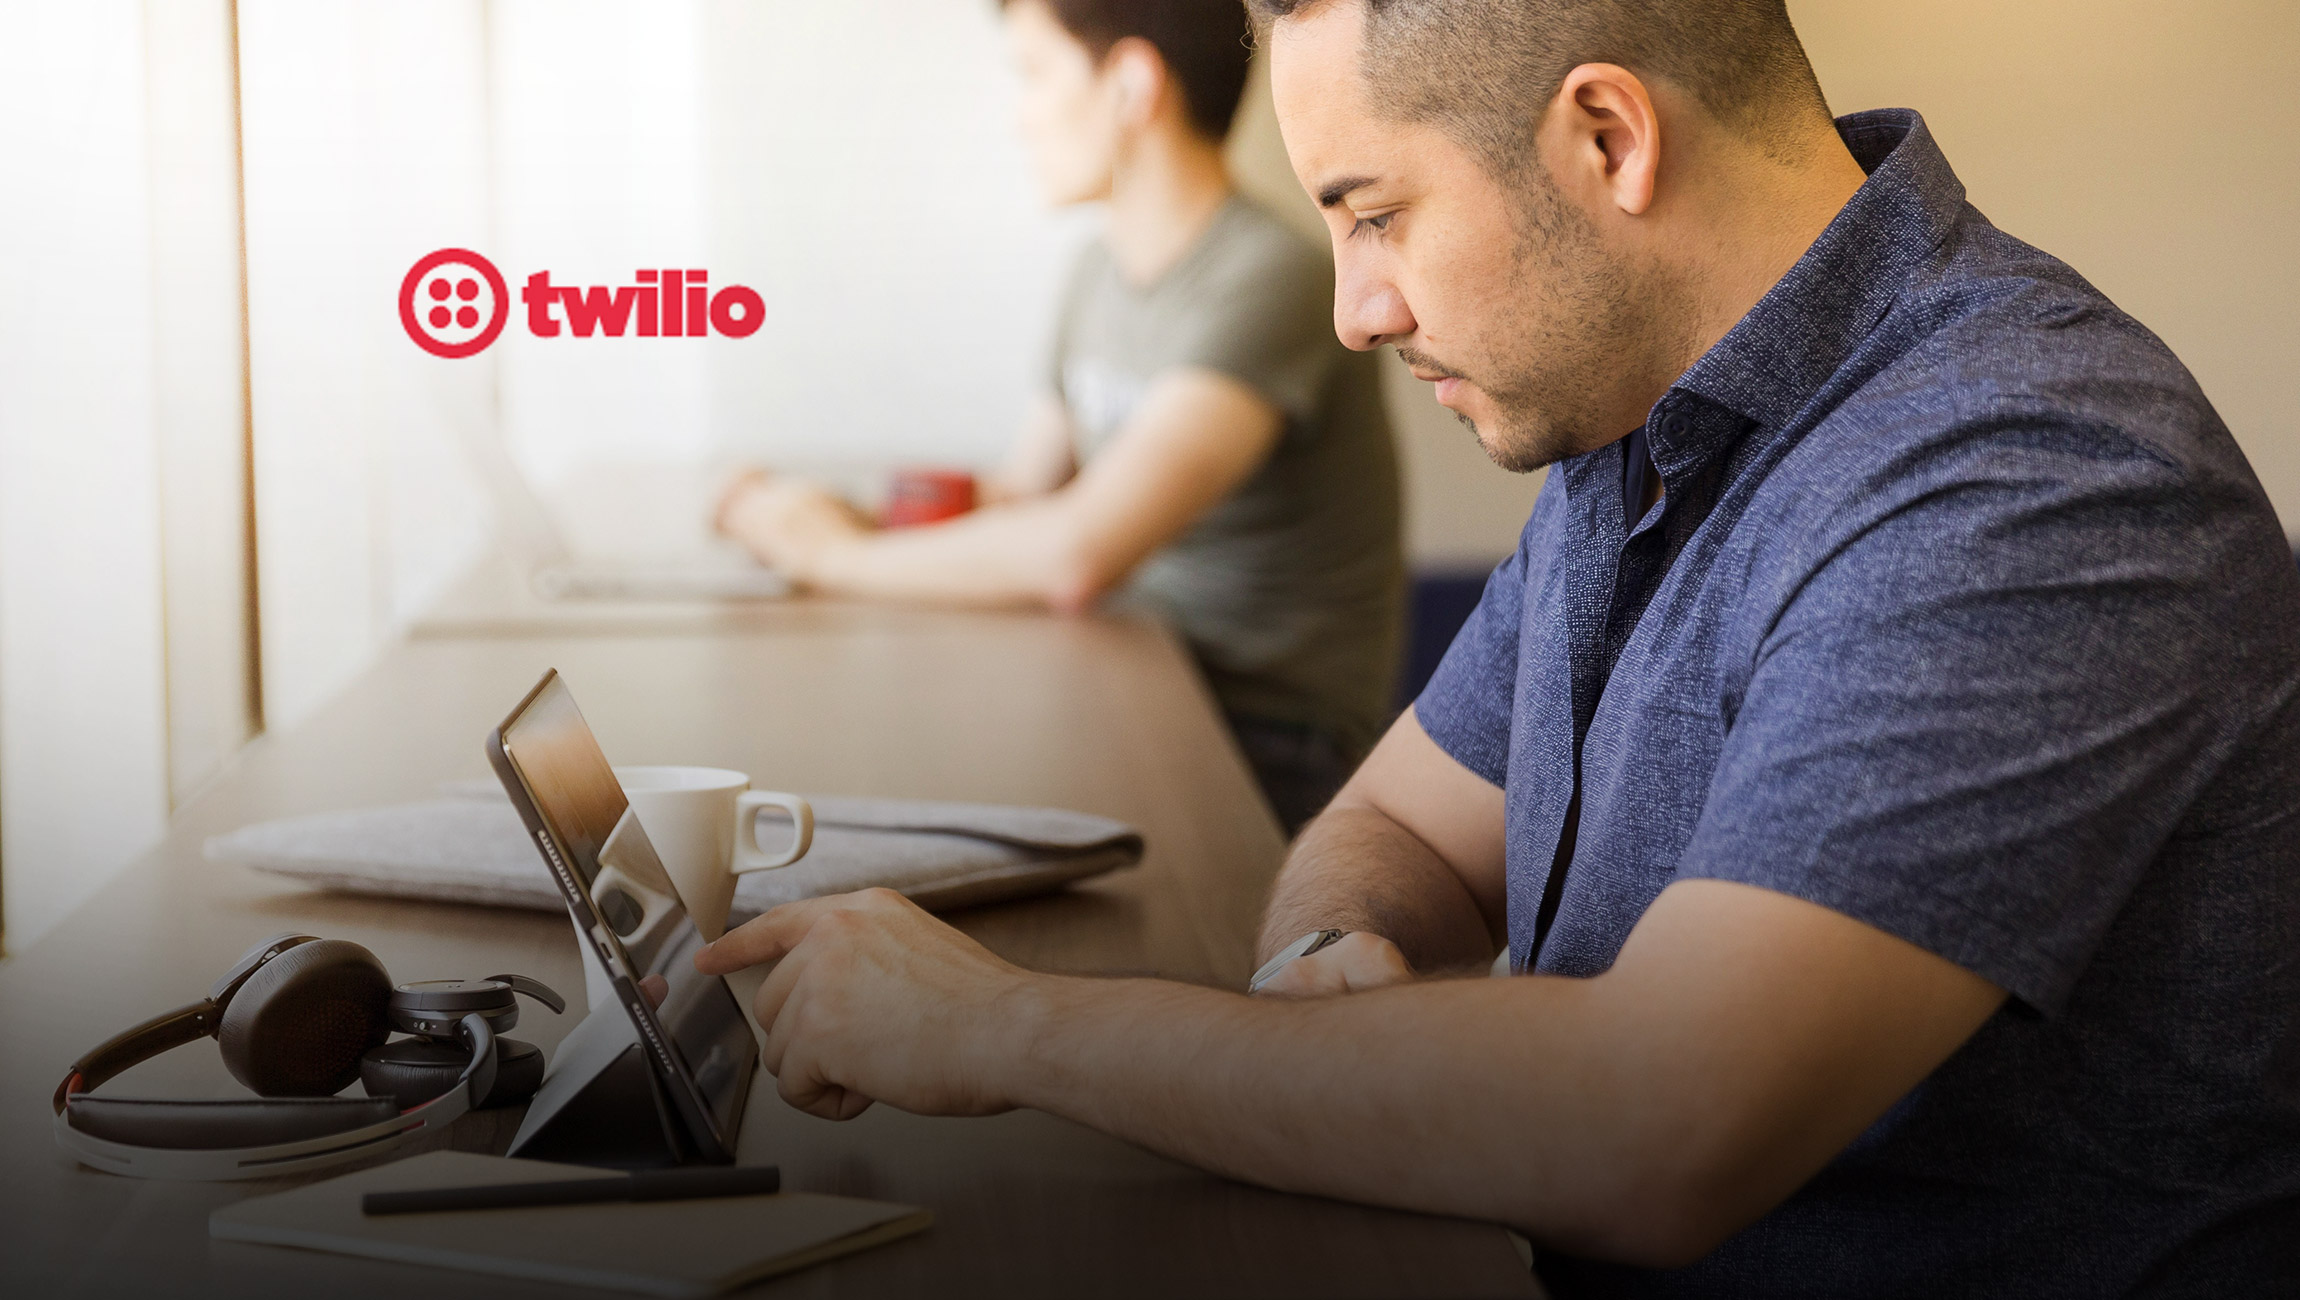 Twilio Powers Video for Doximity Telehealth App Used by Over 100,000 U.S. Physicians